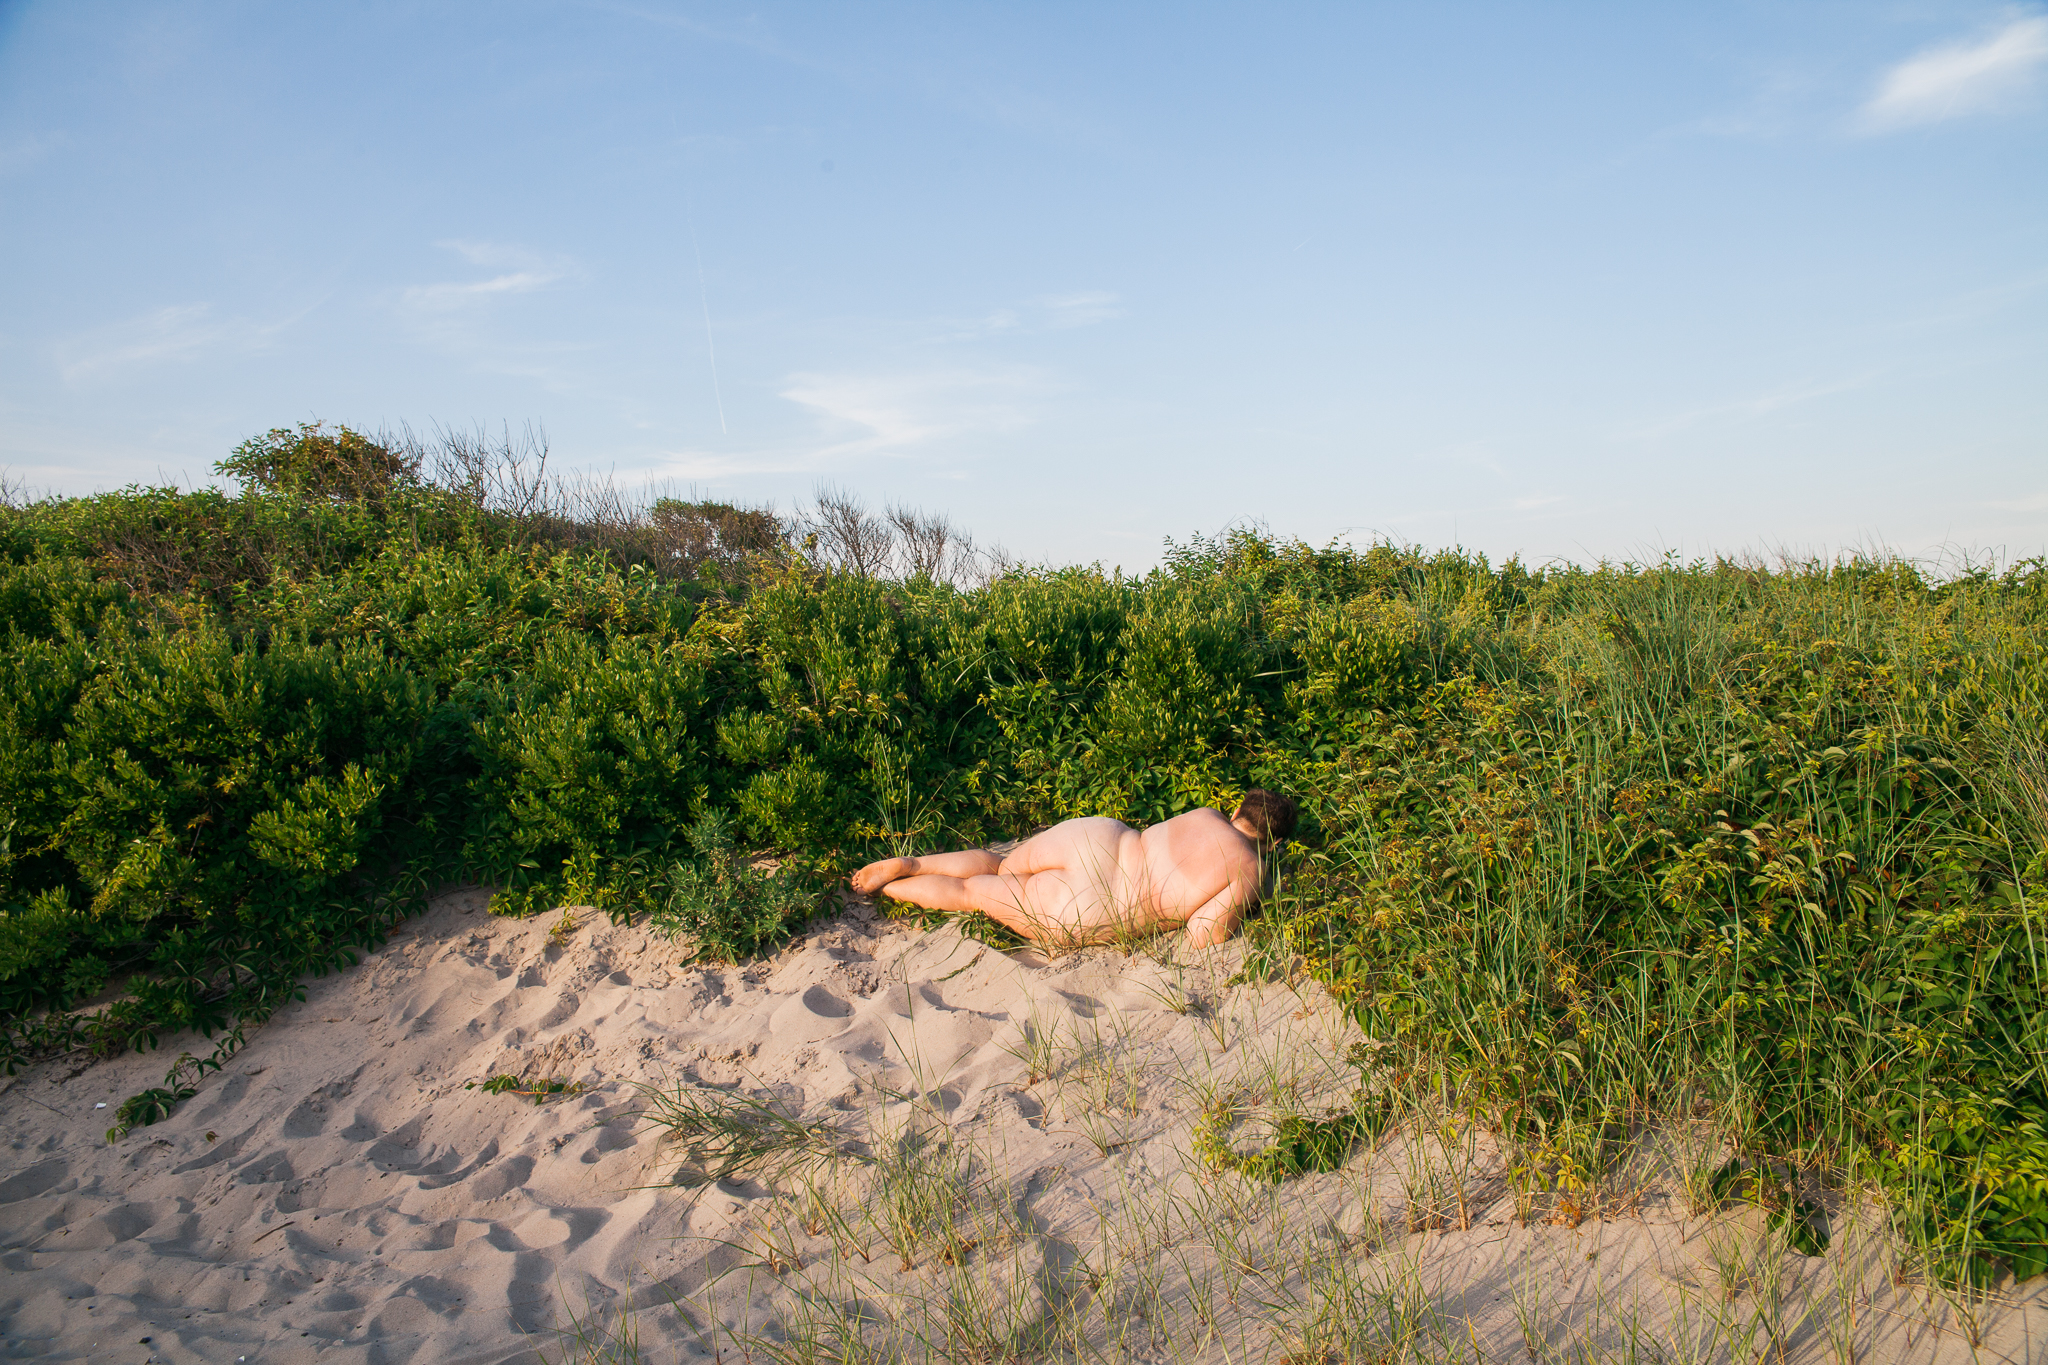 whomstudio_laura-delarato-fort-tilden-beach-nyc_0592-2048.jpg